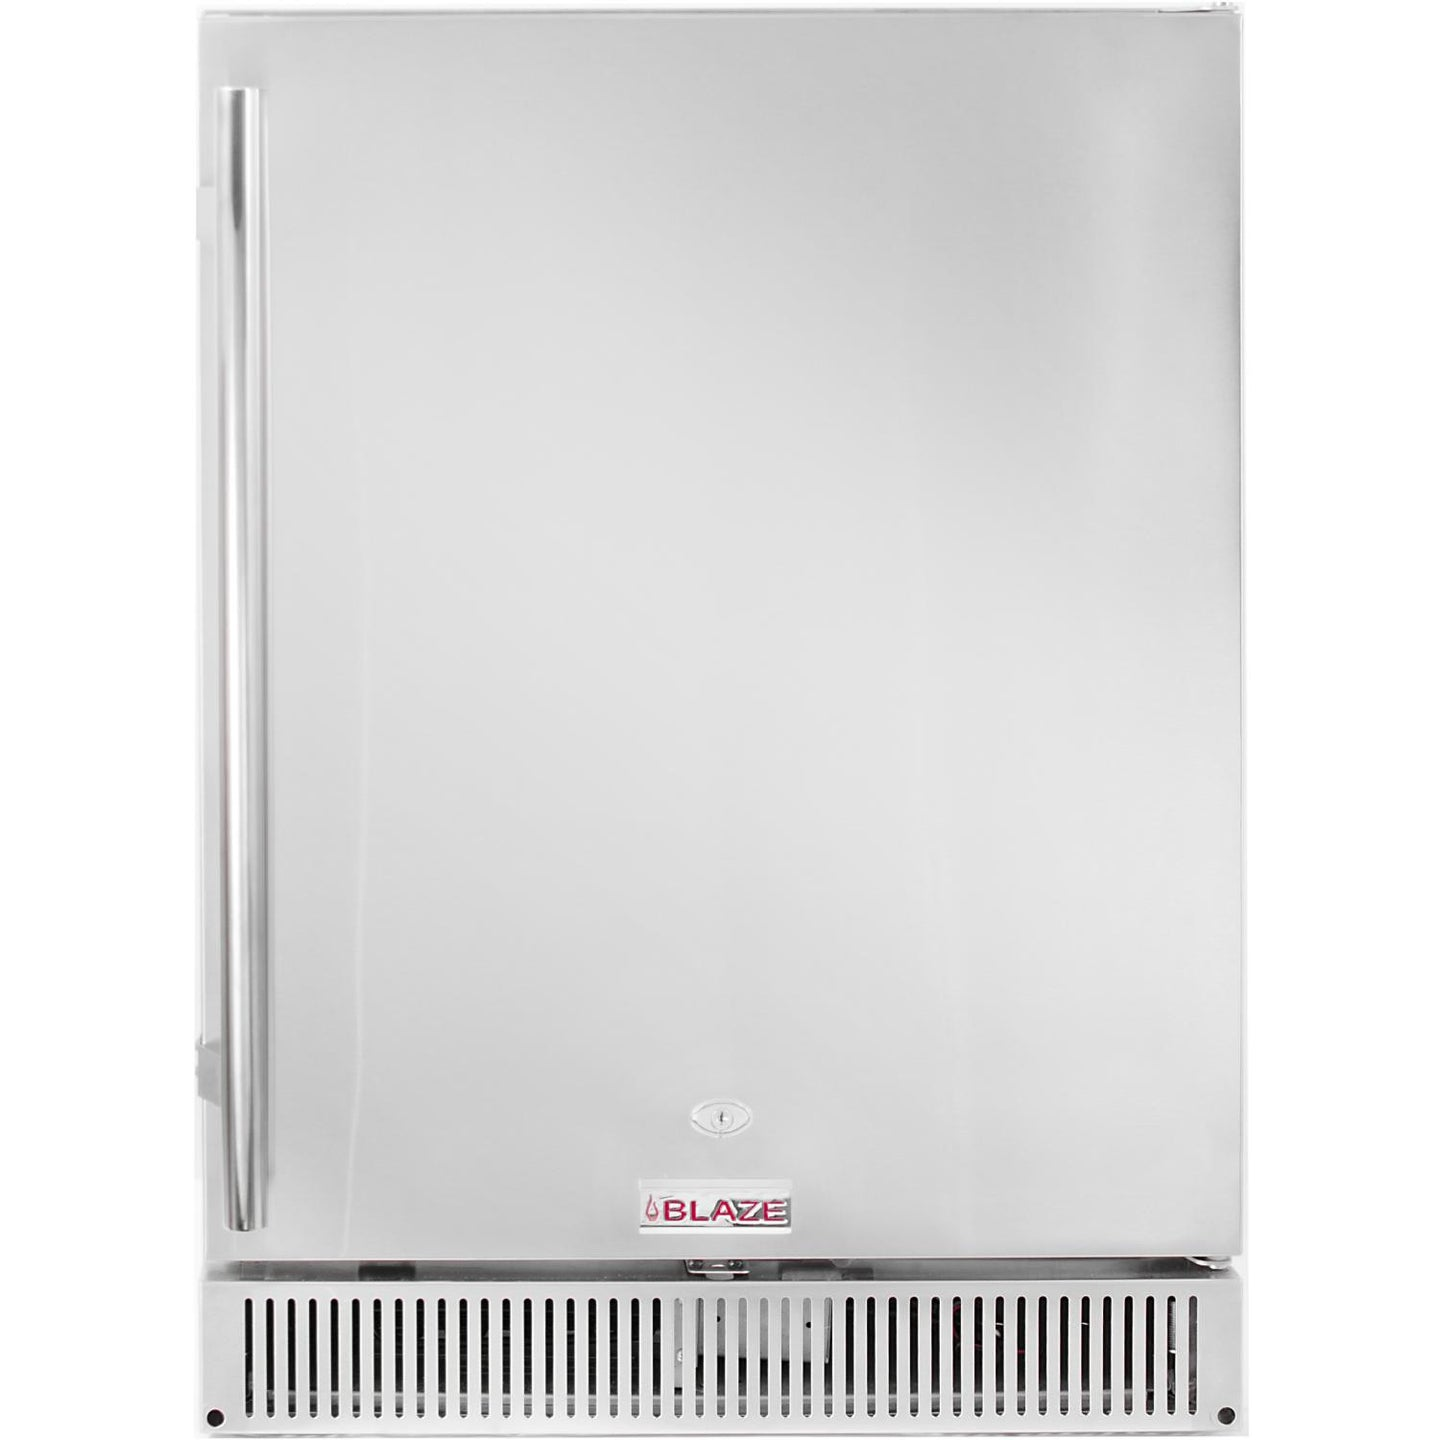 Blaze 24-Inch 5.2 Cu. Ft. Outdoor Stainless Steel Compact Refrigerator - UL Approved - BLZ-SSRF-5.0DH